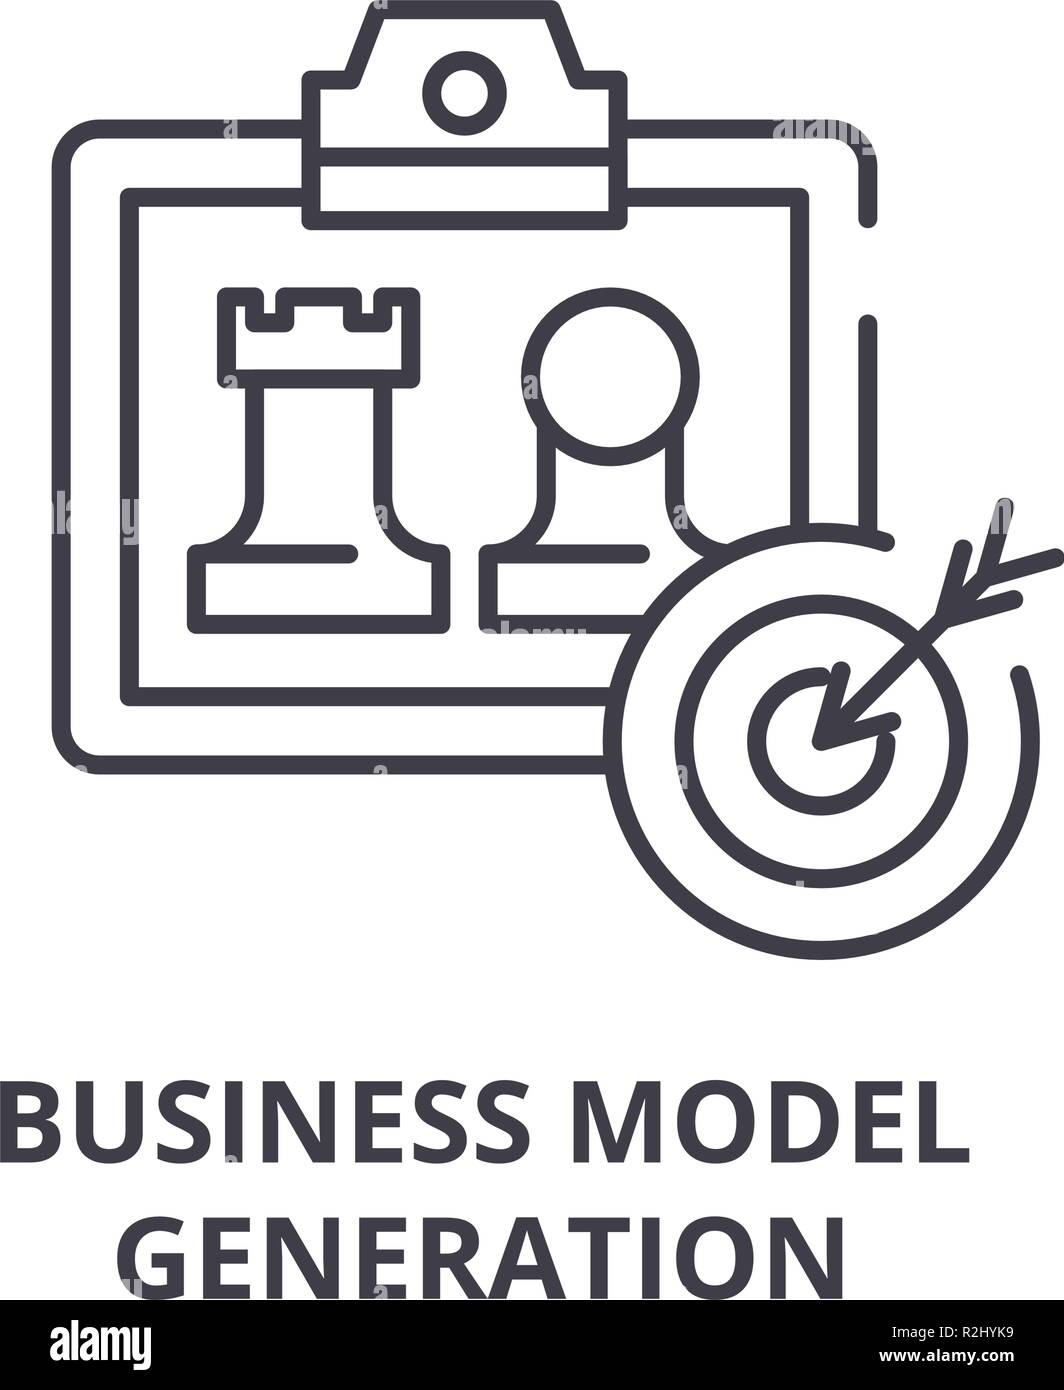 Business model generation line icon concept. Business model generation vector linear illustration, symbol, sign Stock Vector